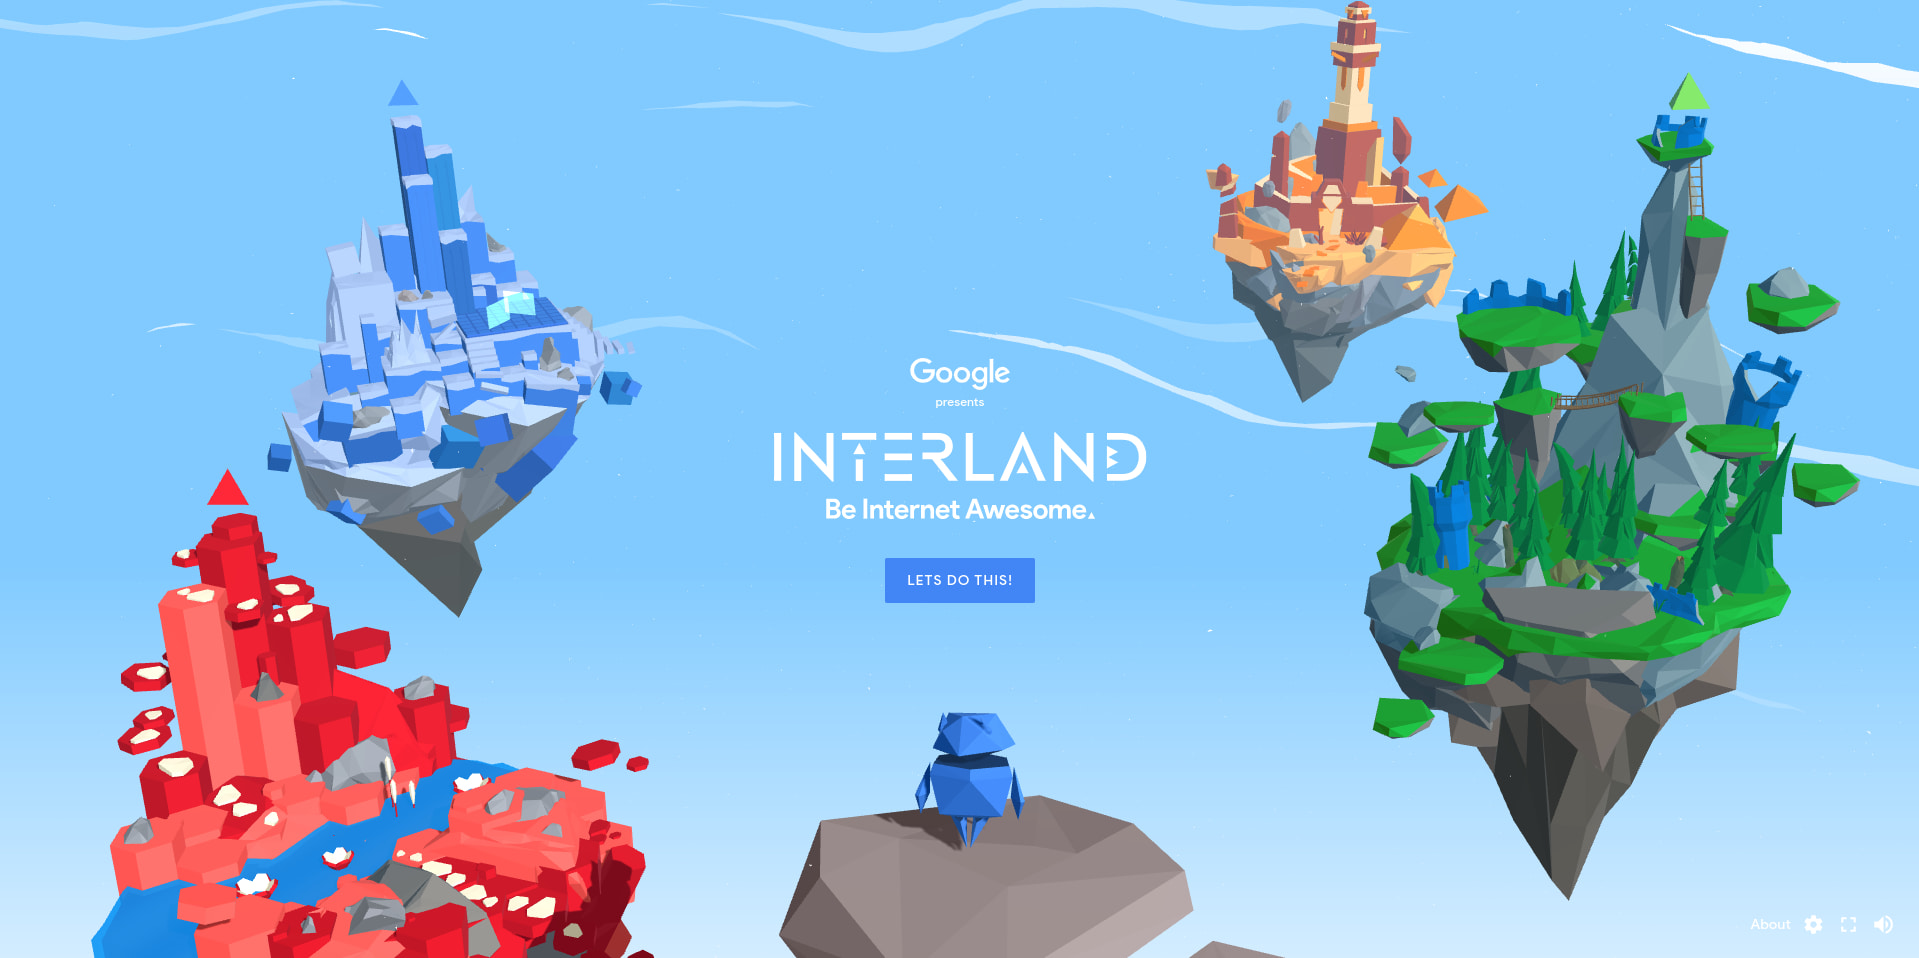 Be Internet Awesome! Interland is a fun game that teaches your kids about online safety